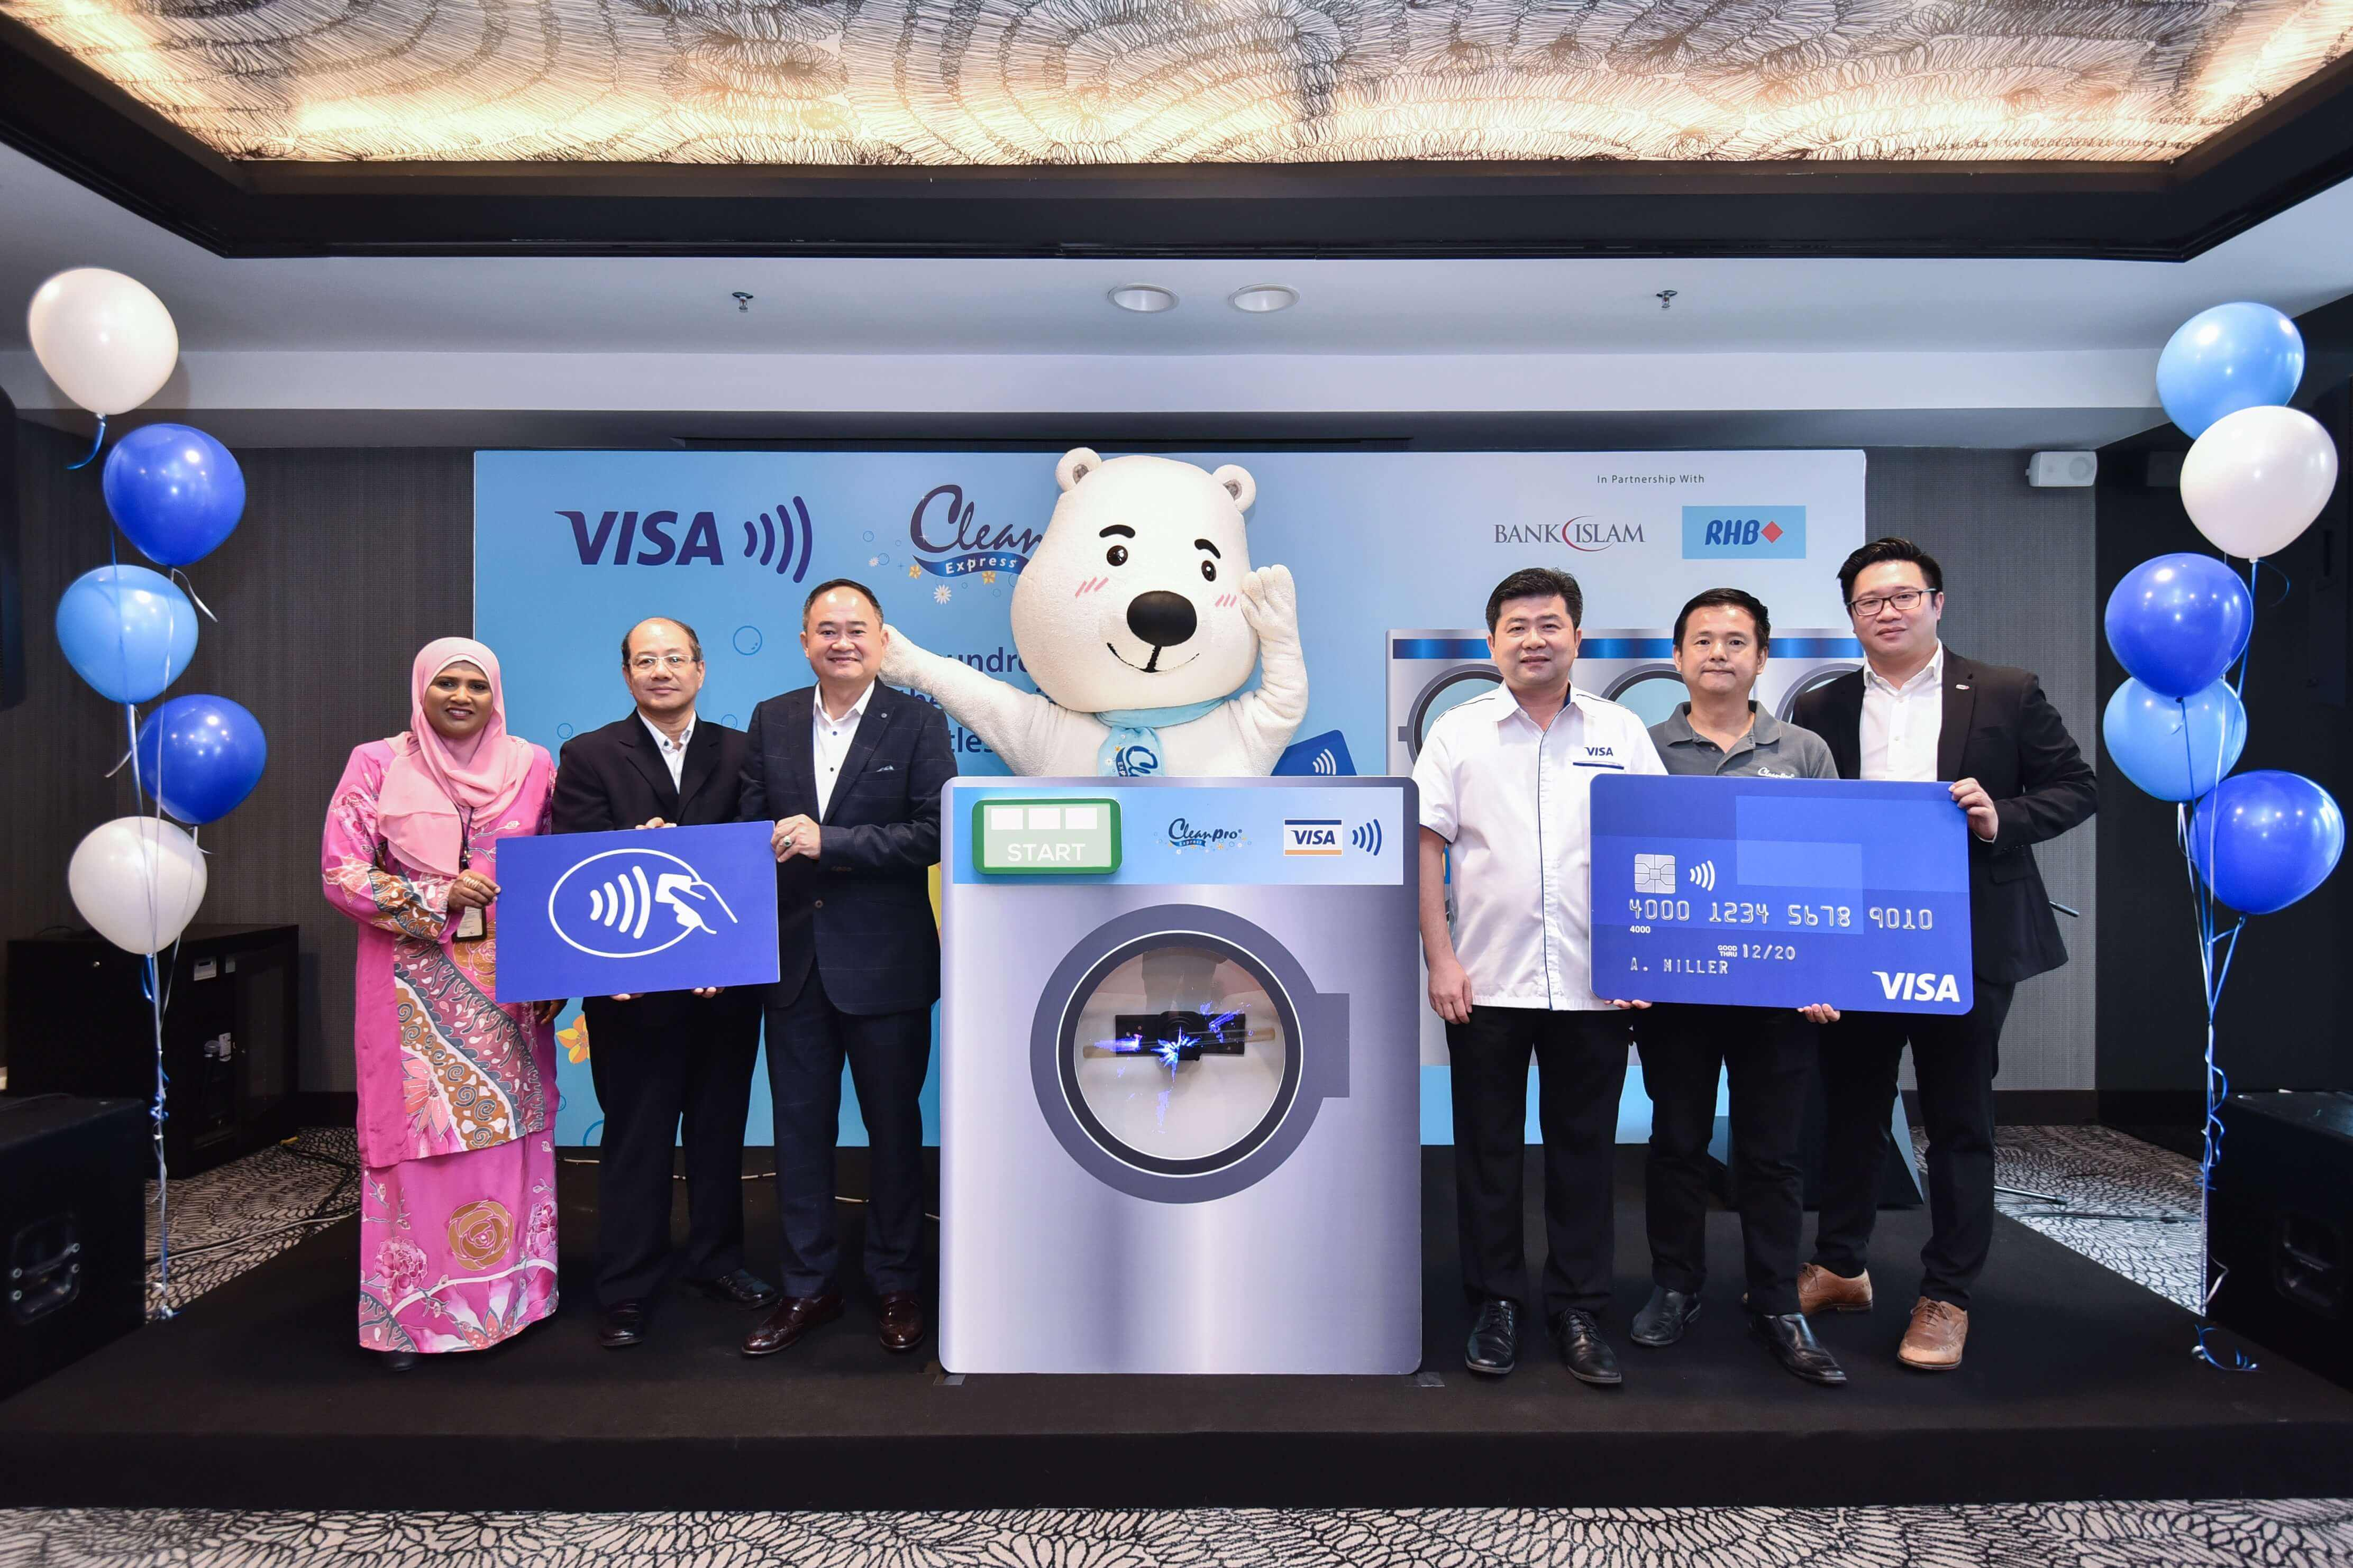 Cleanpro Express: First Laundromat Chain In SEA To Accept Visa Contactless Payments